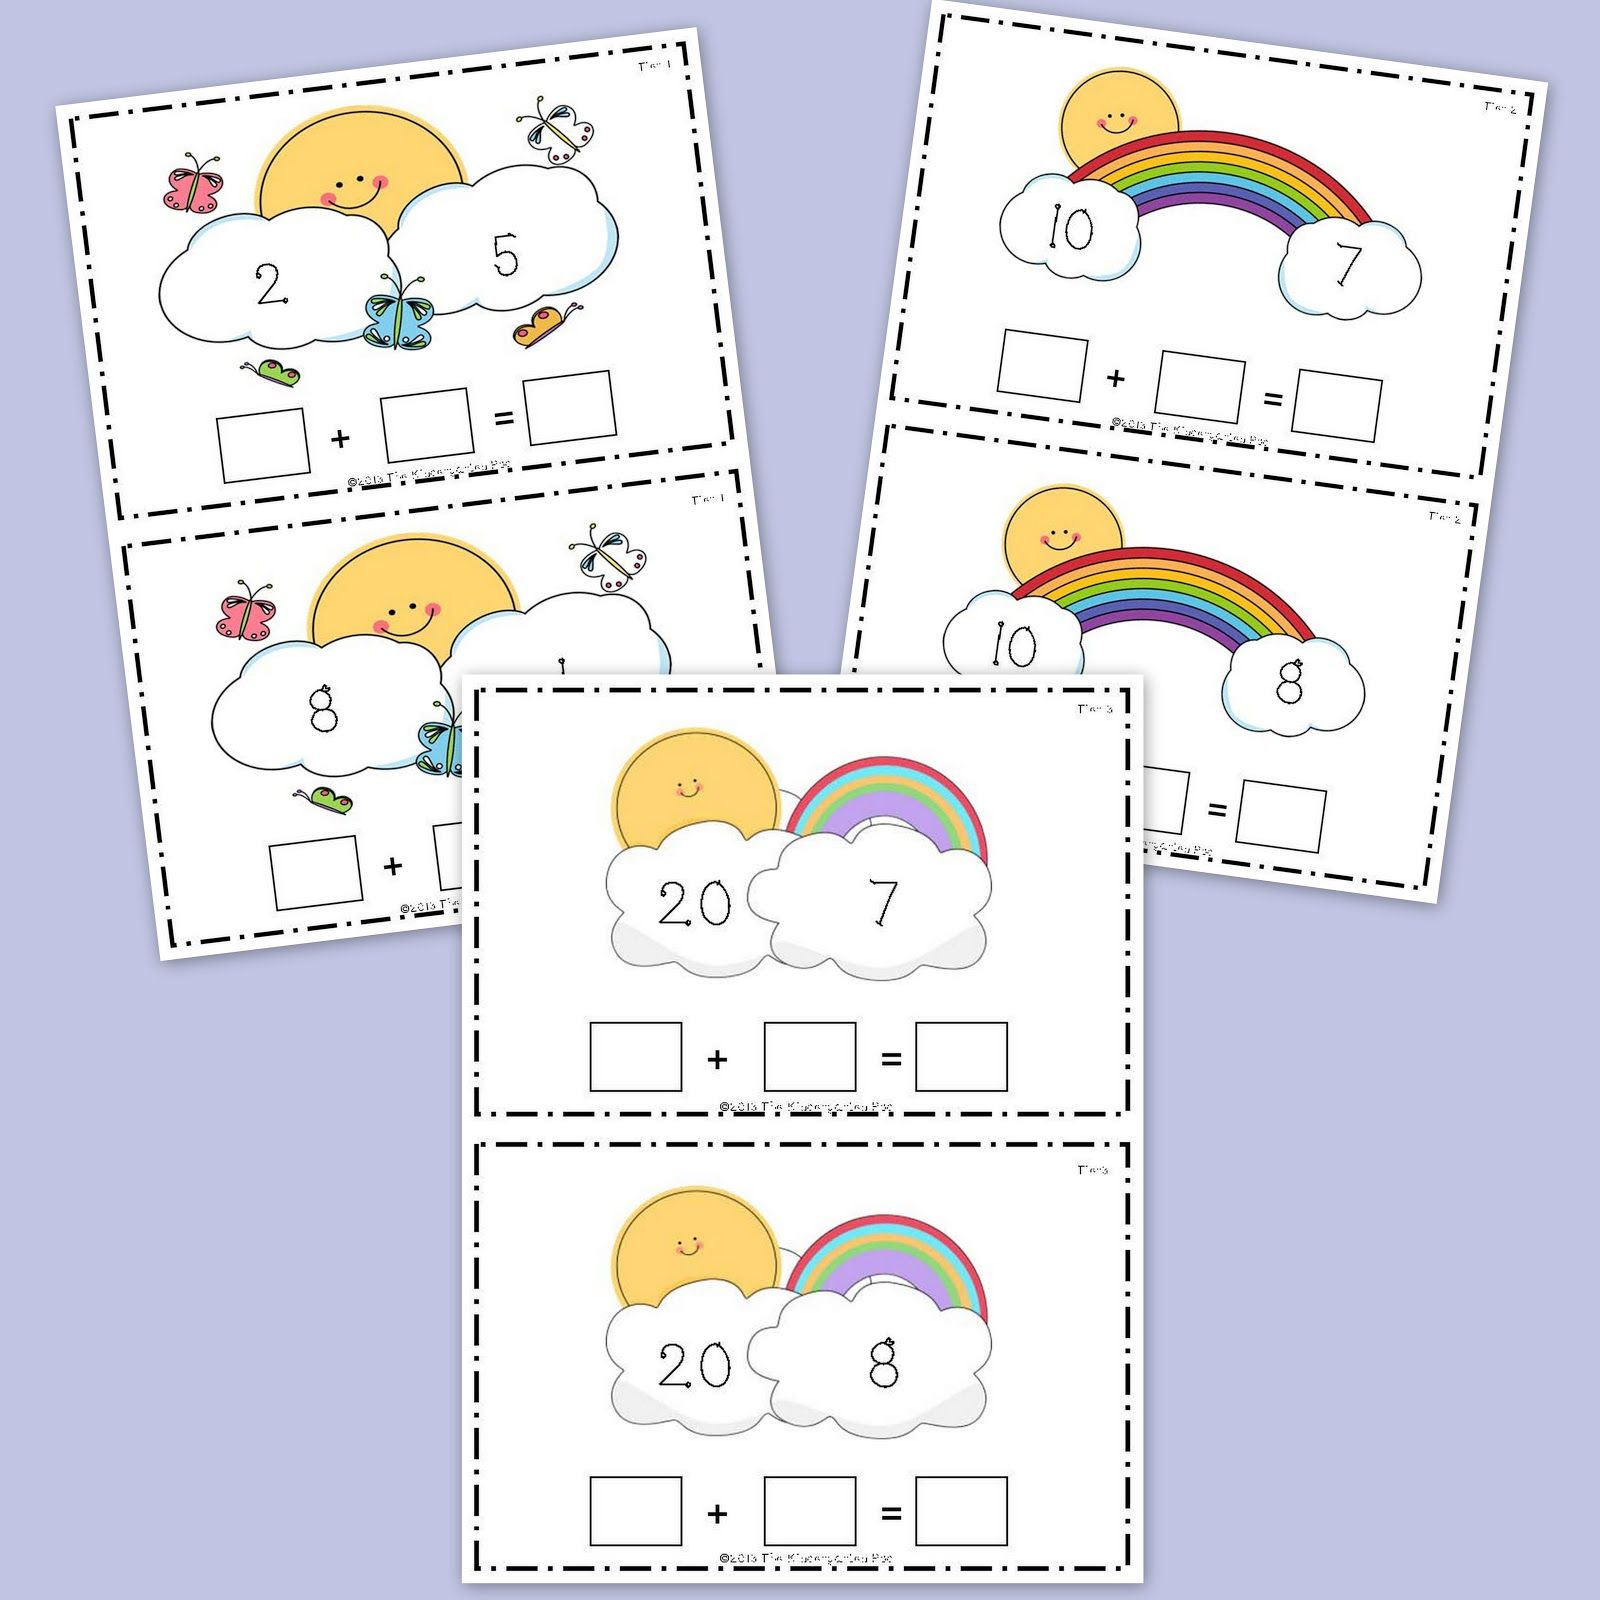 The Kindergarten Pod Cute Spring Themed Activity To Practice Addition 3 Tiers For